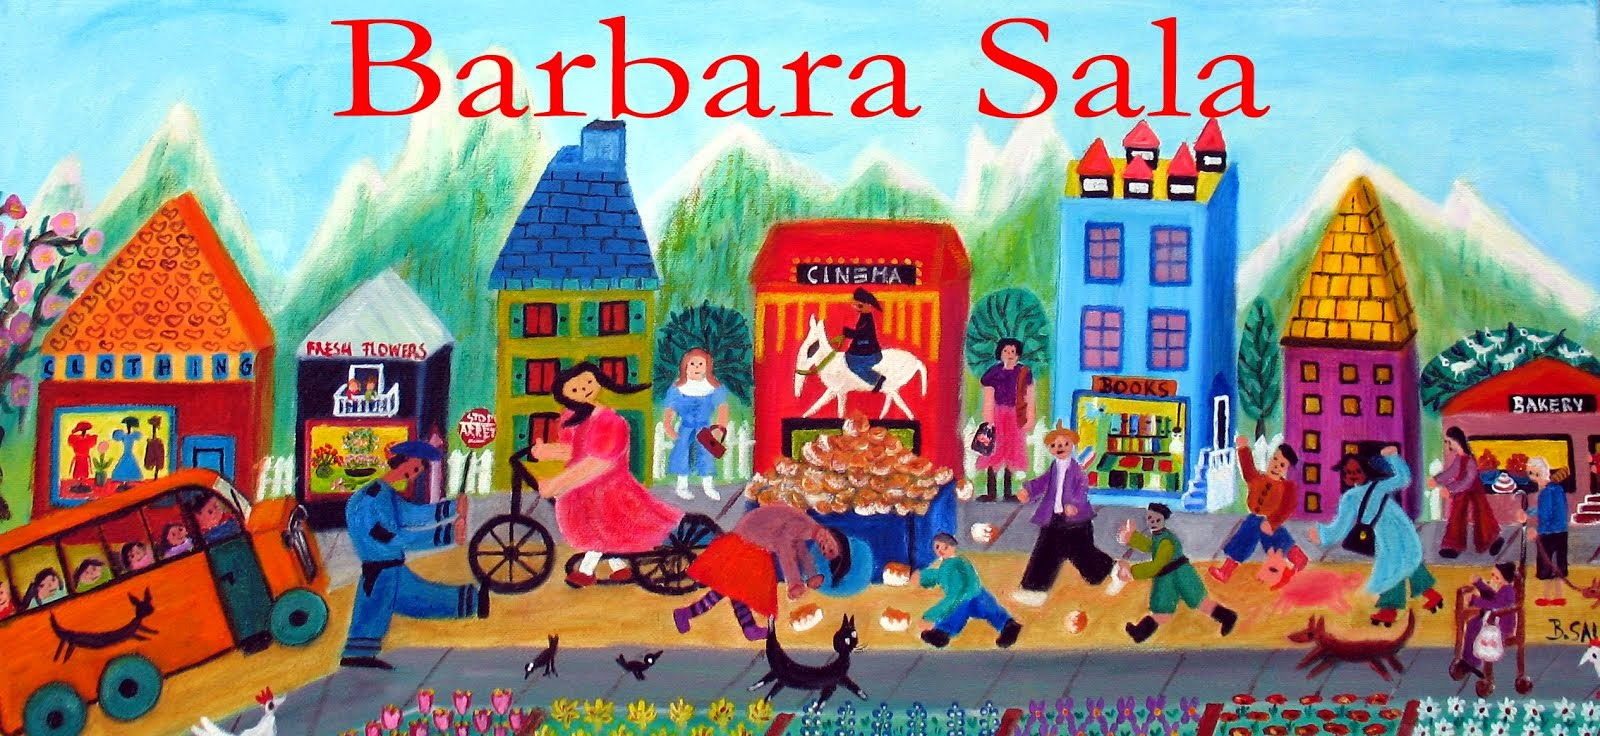 Barbara sala publishing